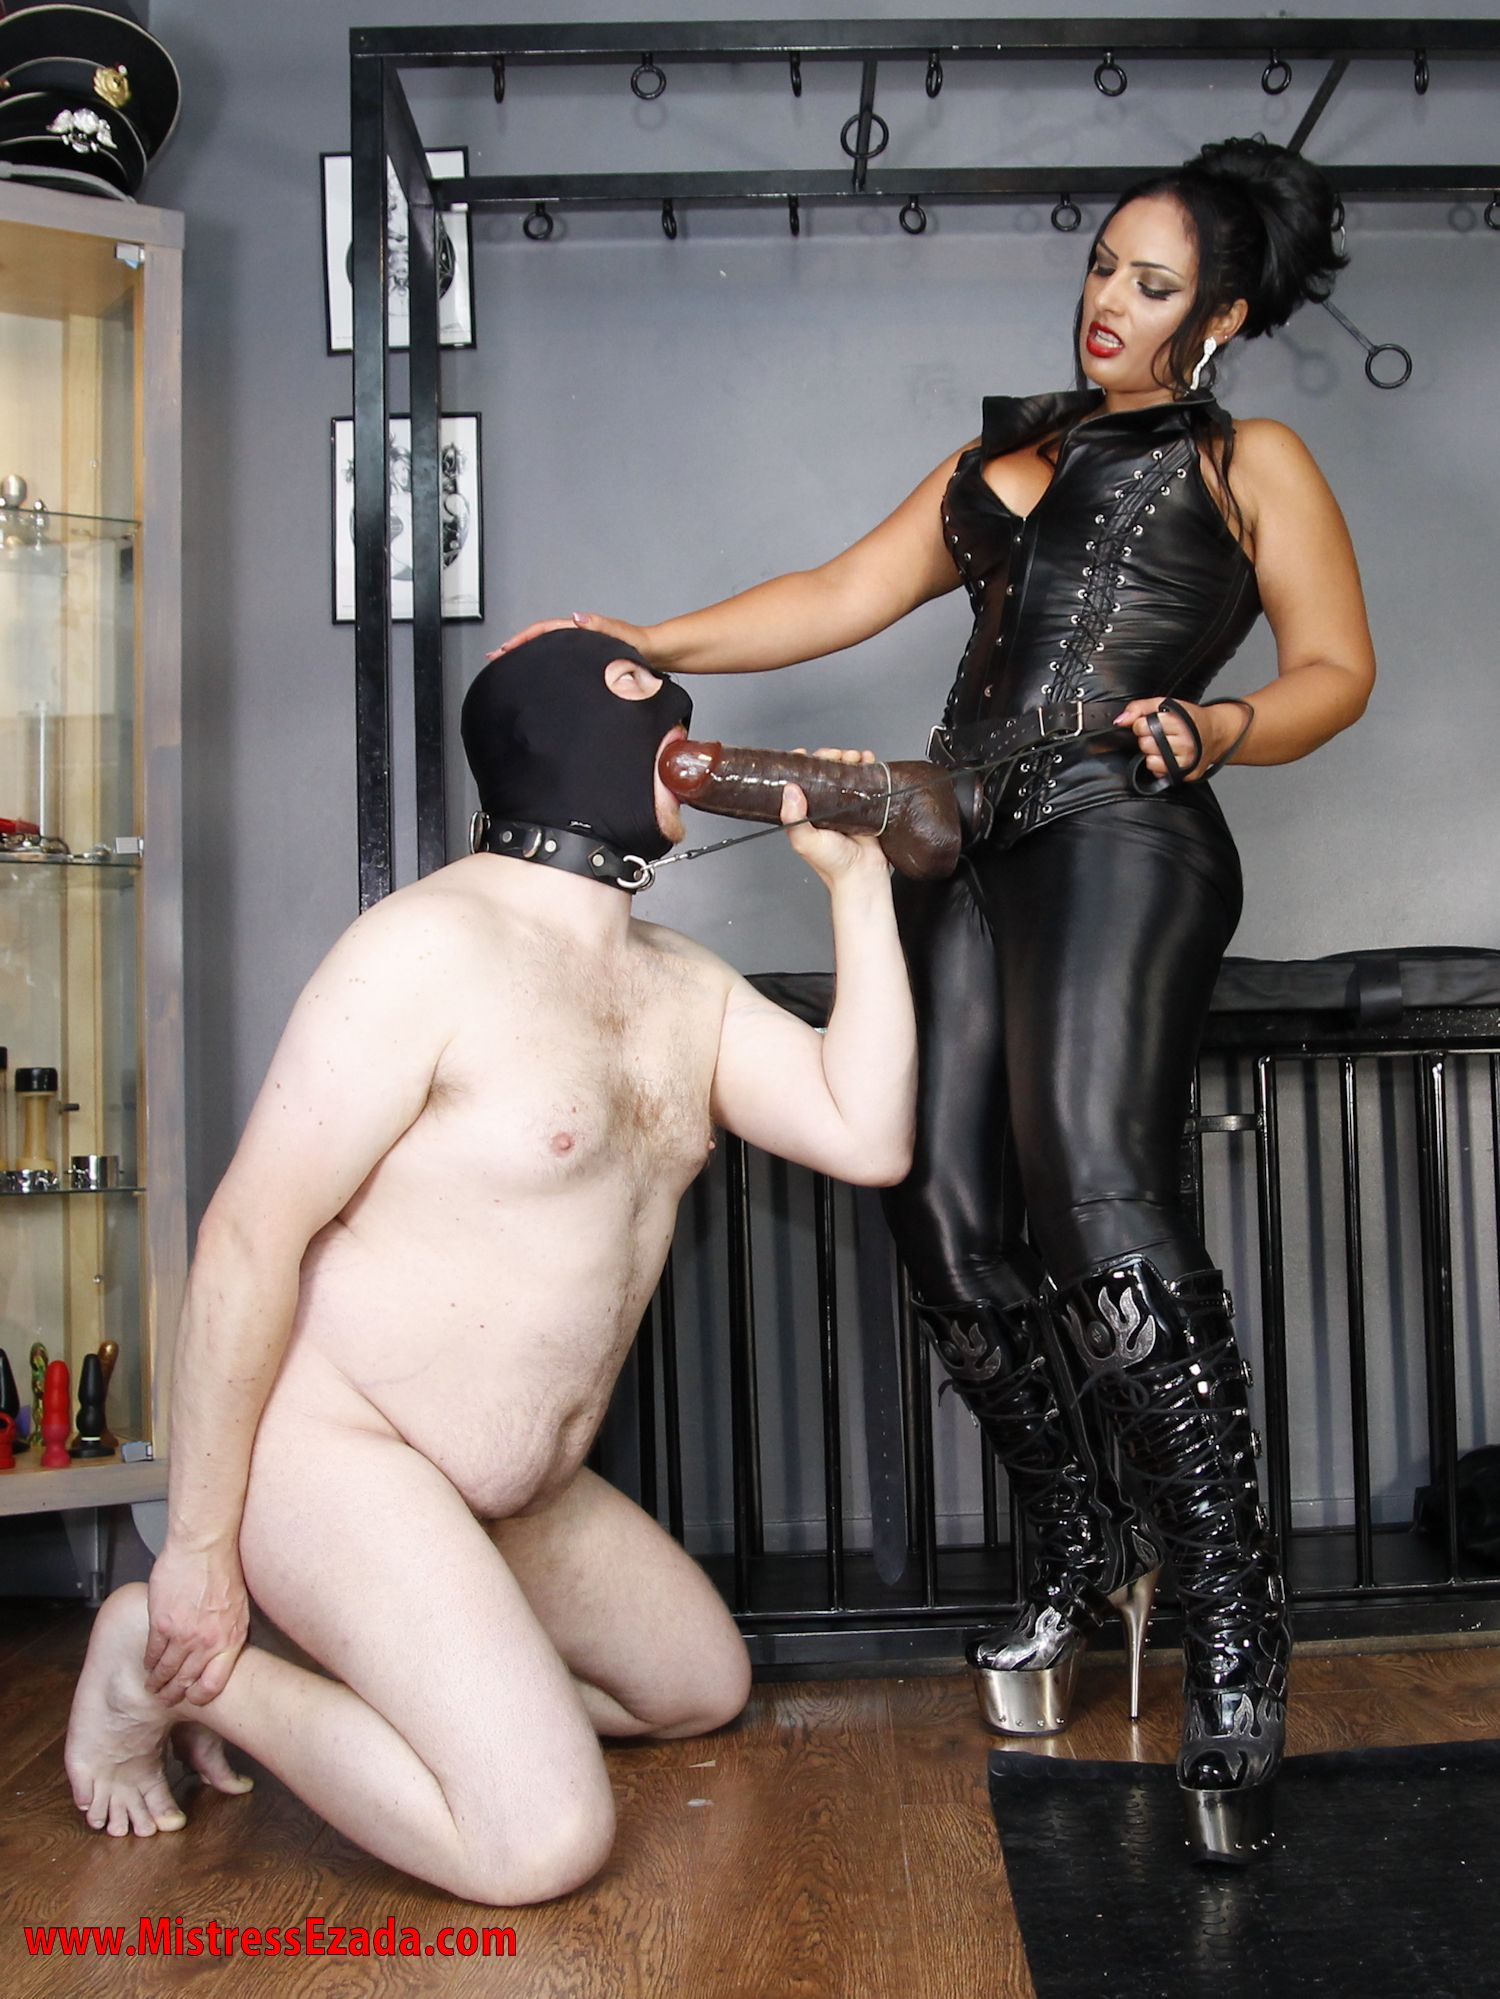 Strap-on pegging worship Ezada Sinn free femdom stories